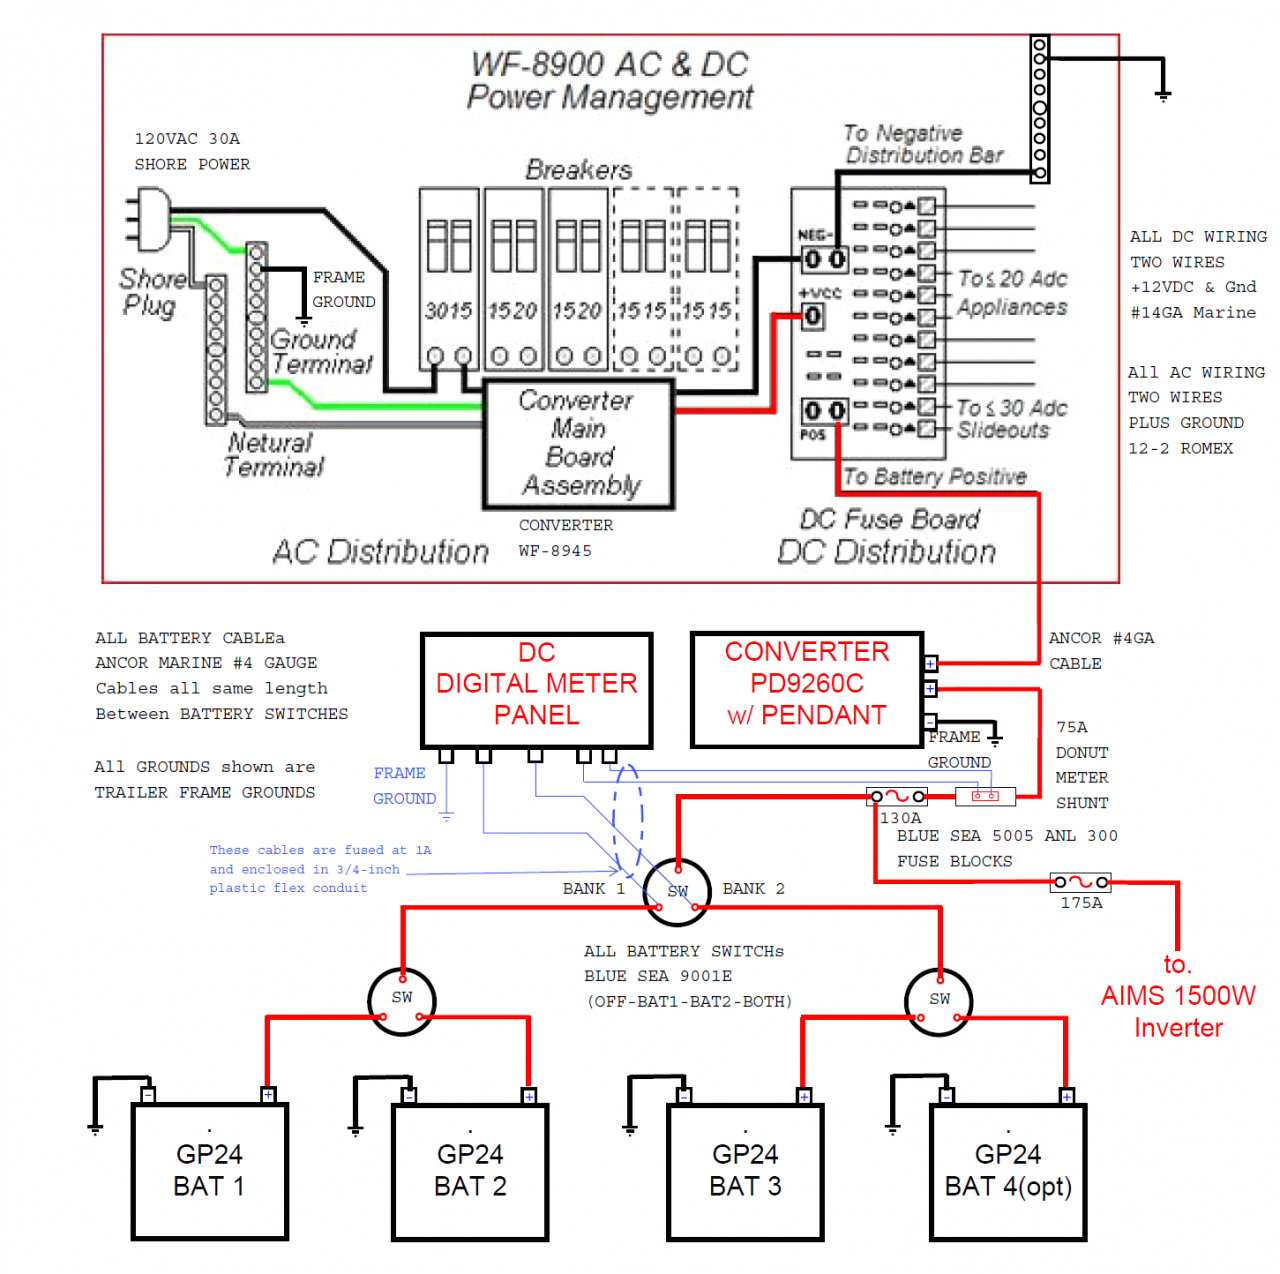 dual battery wiring diagram car audio ford f350 diagrams marine inverter charger sample